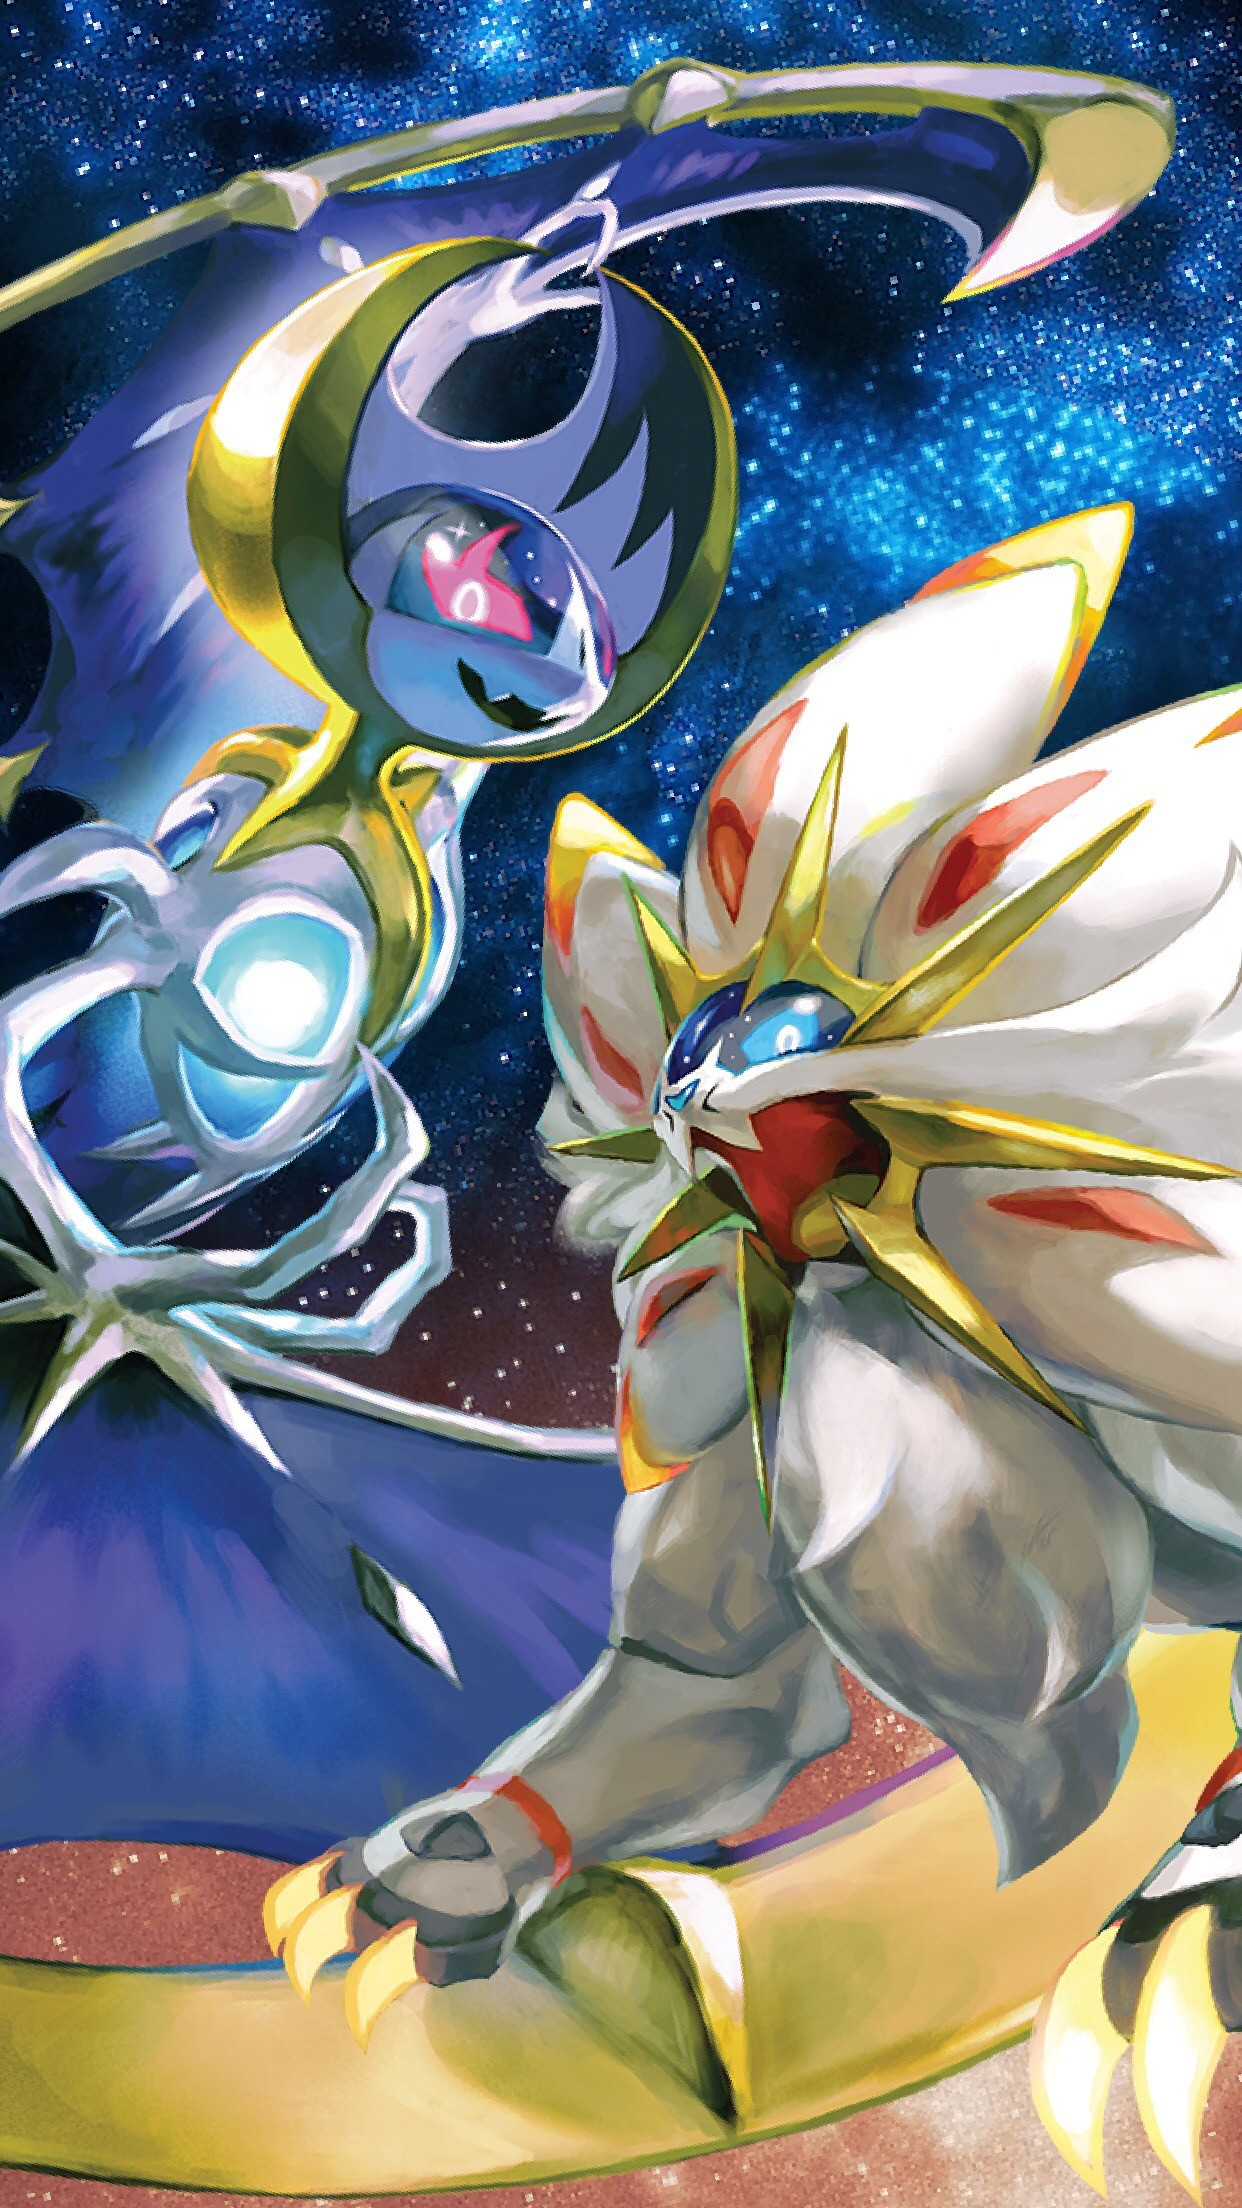 1242x2208 Solgaleo & Lunala Mobile Wallpaper (iPhone 6s Scale: 1242 x 2208 px)